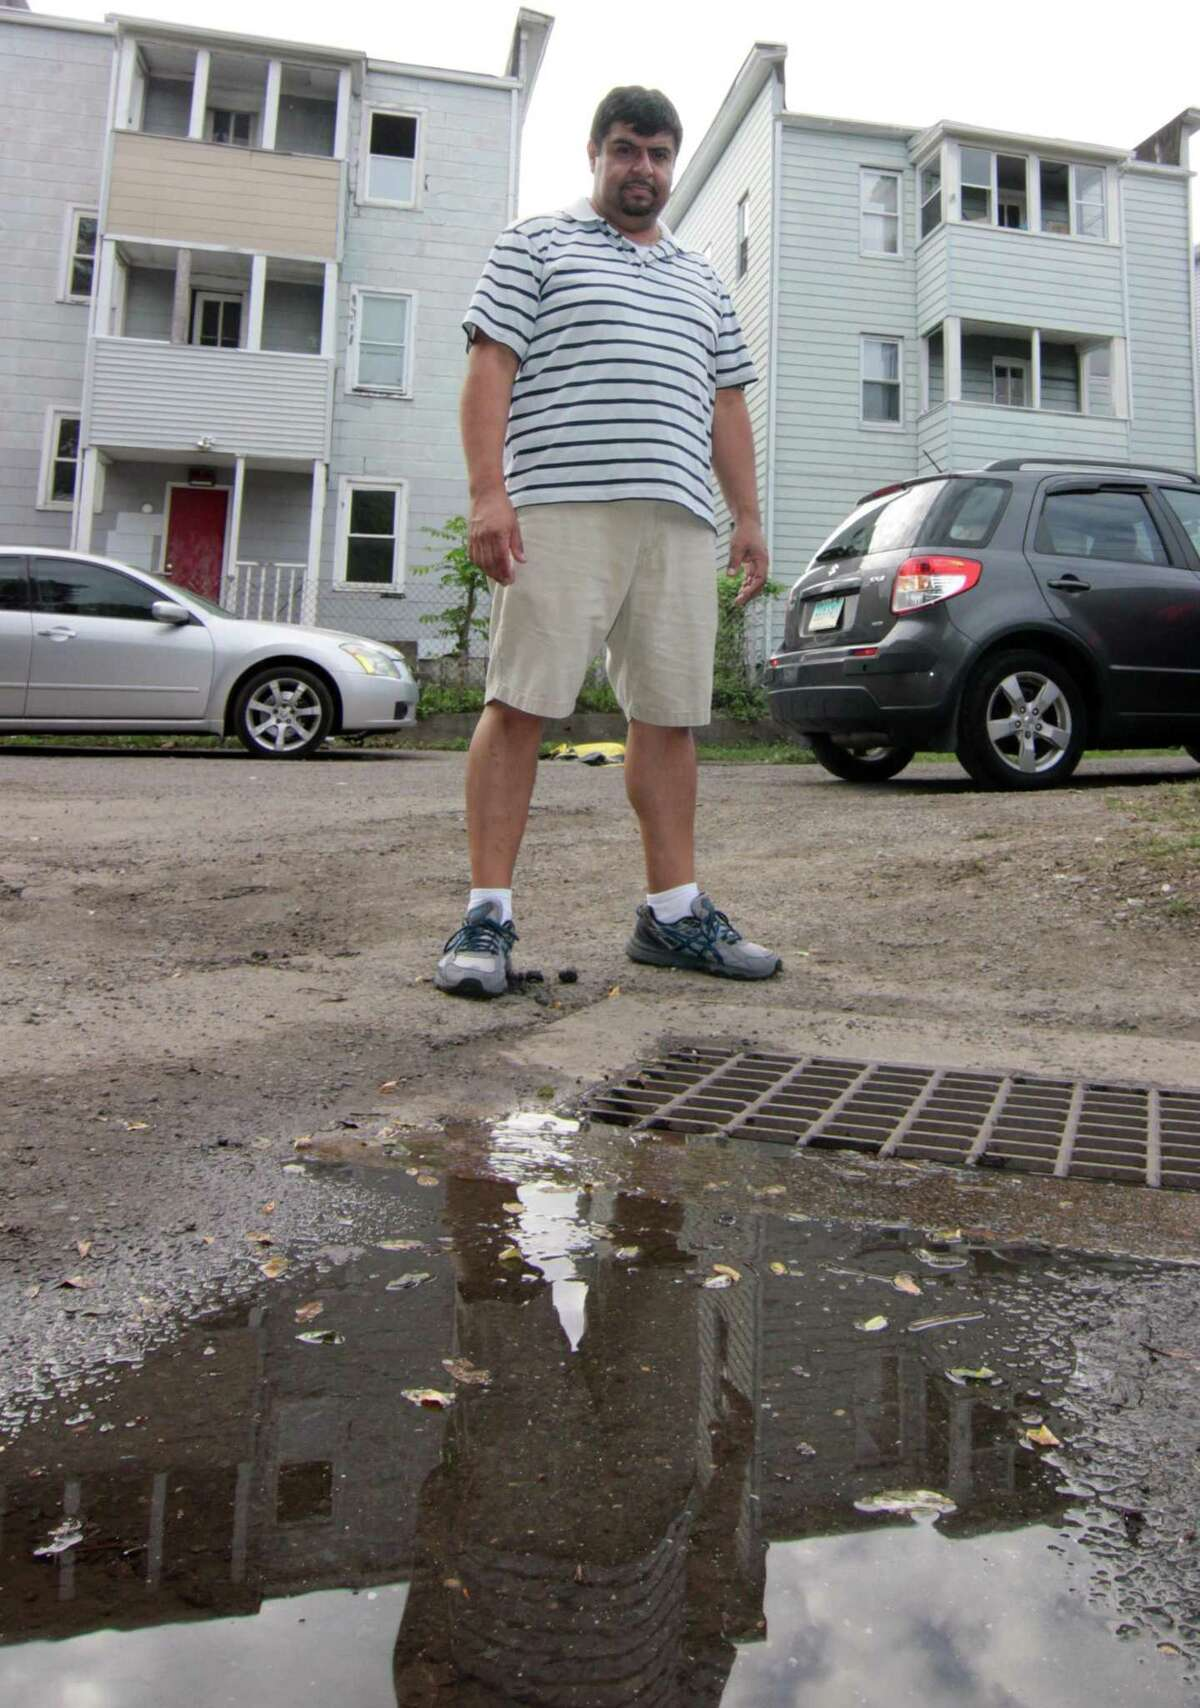 Wallace Court resident Pedro Quiroga stands near a drain that constantly backs up and floods the whole street in Bridgeport, Conn., on Tuesday Oct. 9, 2018. Many homes in the neighborhood were damaged by the flooding, including Quiroga's, after a heavy rainstorm on Tuesday Oct. 2, 2018.